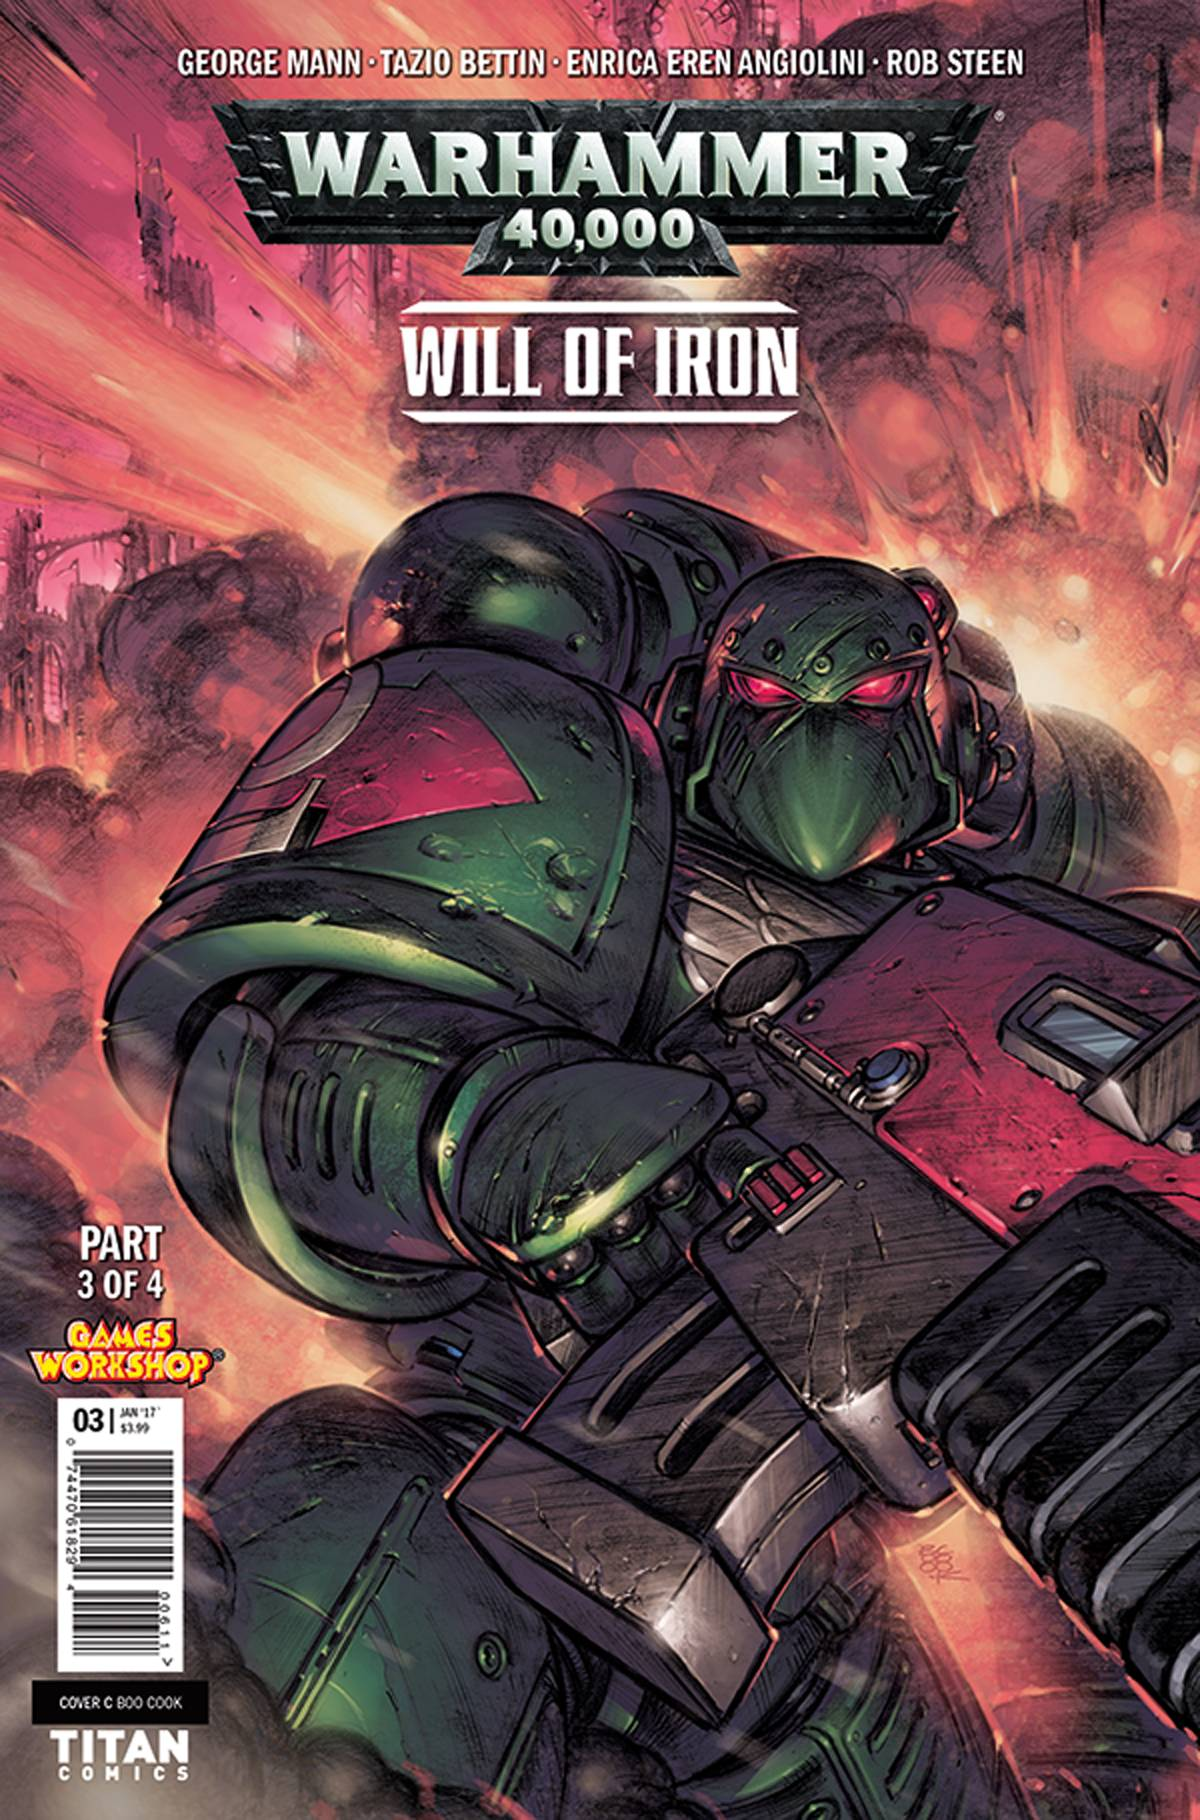 WARHAMMER 40,000 WILL OF IRON #3: Variant Cover 2